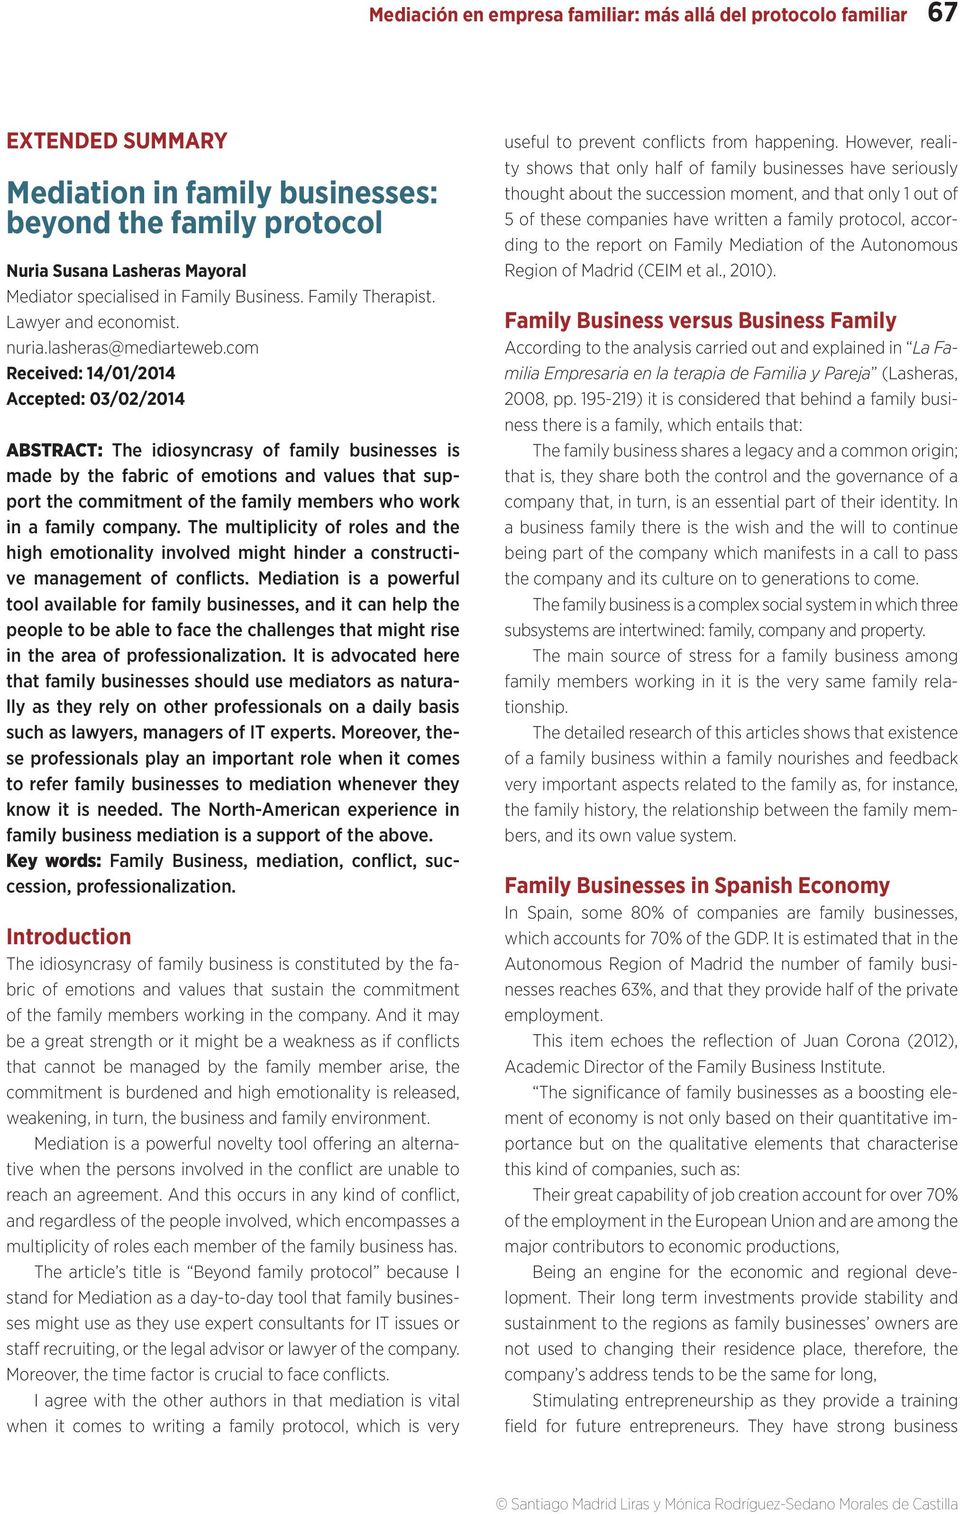 com Received: 14/01/2014 Accepted: 03/02/2014 ABSTRACT: The idiosyncrasy of family businesses is made by the fabric of emotions and values that support the commitment of the family members who work